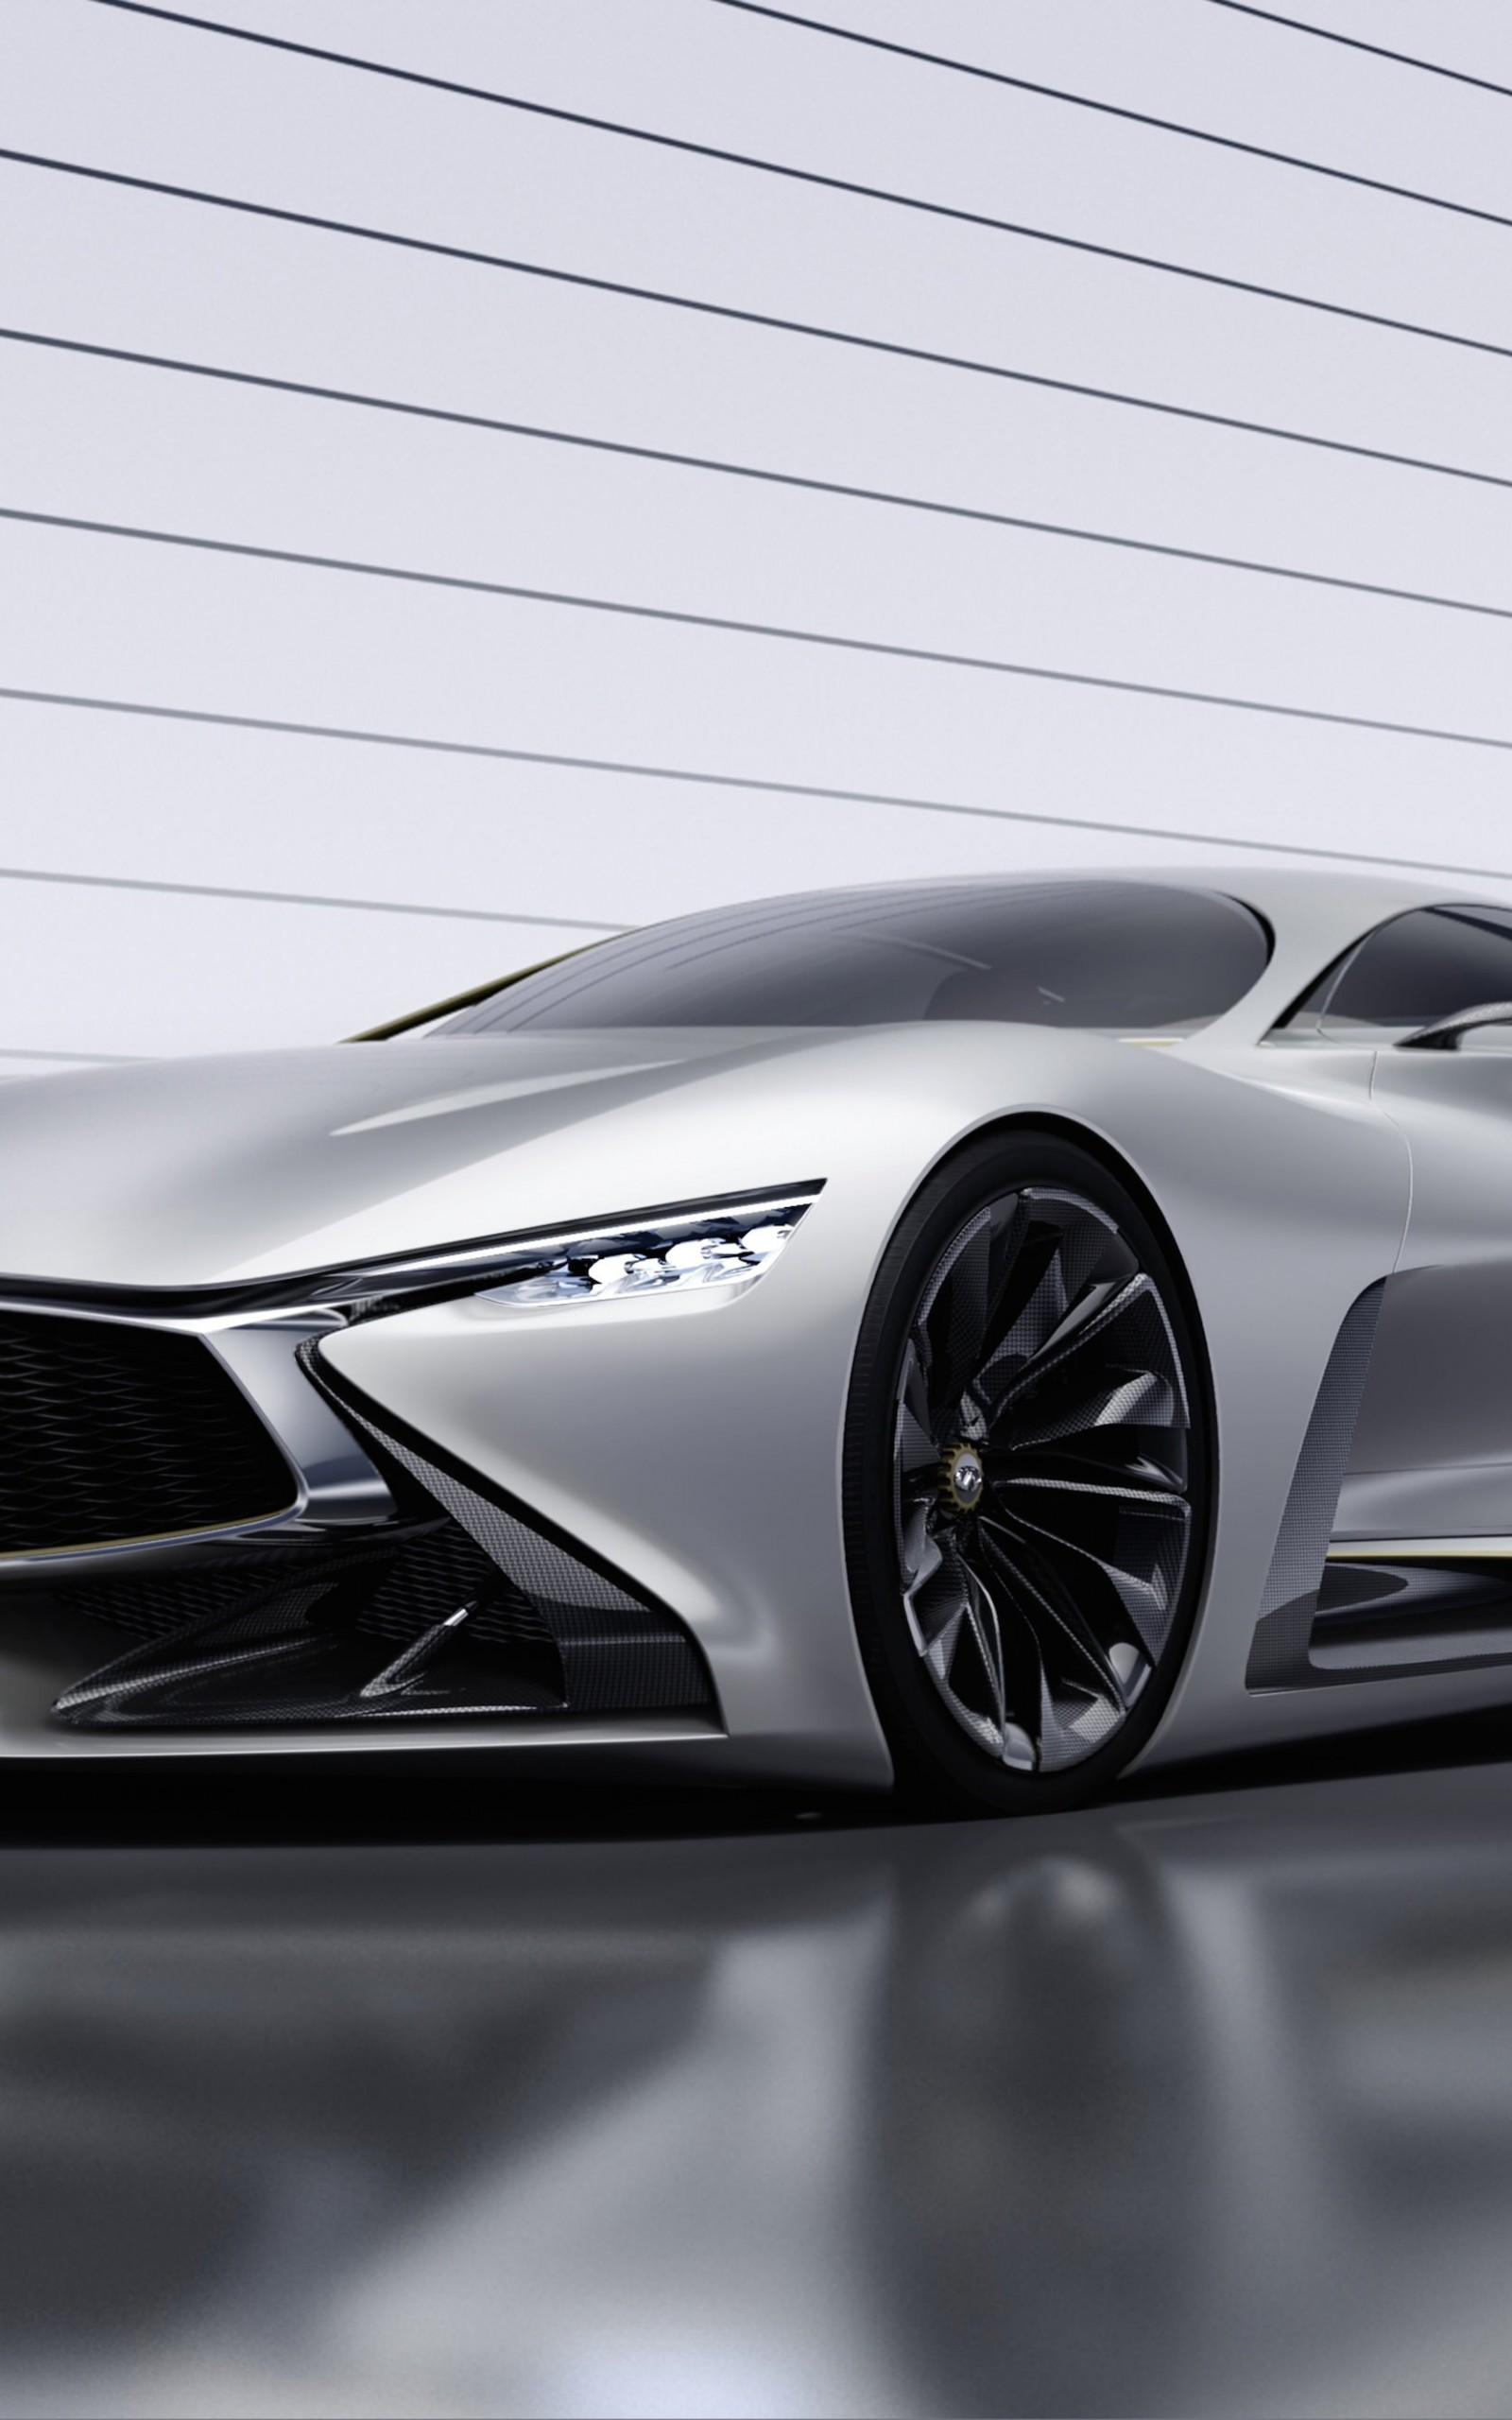 Infiniti Vision GT Concept Wallpaper for Amazon Kindle Fire HDX 8.9